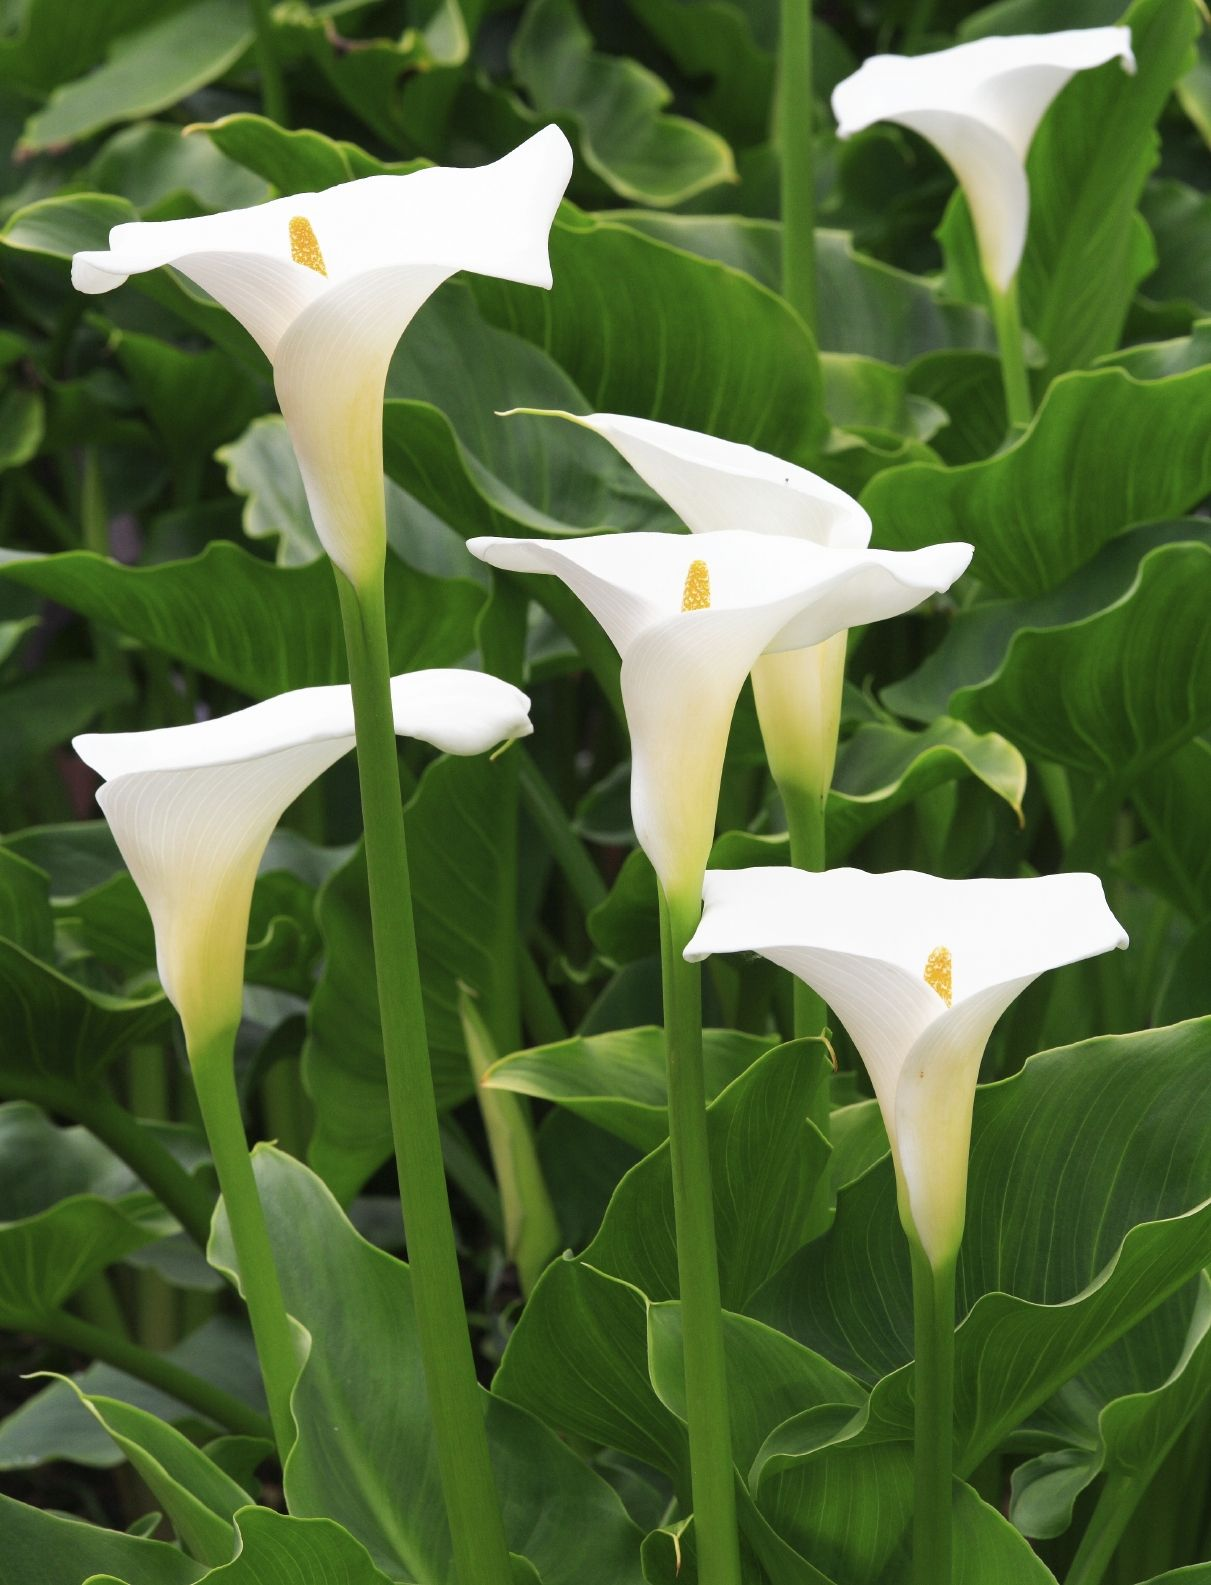 How to deadhead calla lily information on deadheading calla lilies how to deadhead calla lily information on deadheading calla lilies izmirmasajfo Choice Image